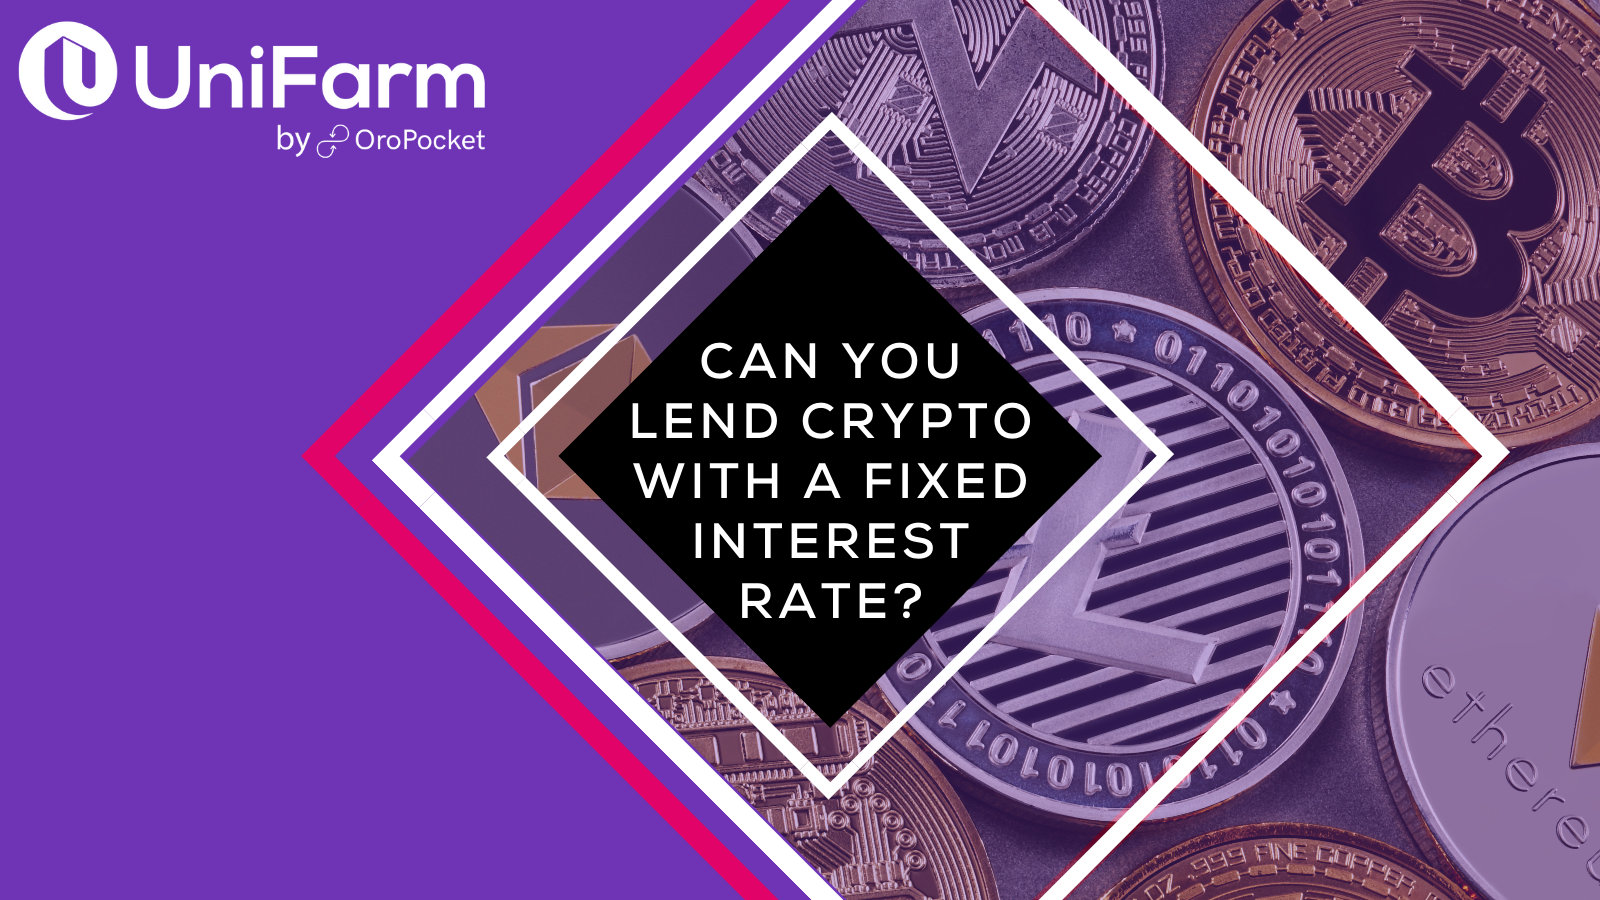 Can You Lend Crypto With a Fixed Interest Rate?